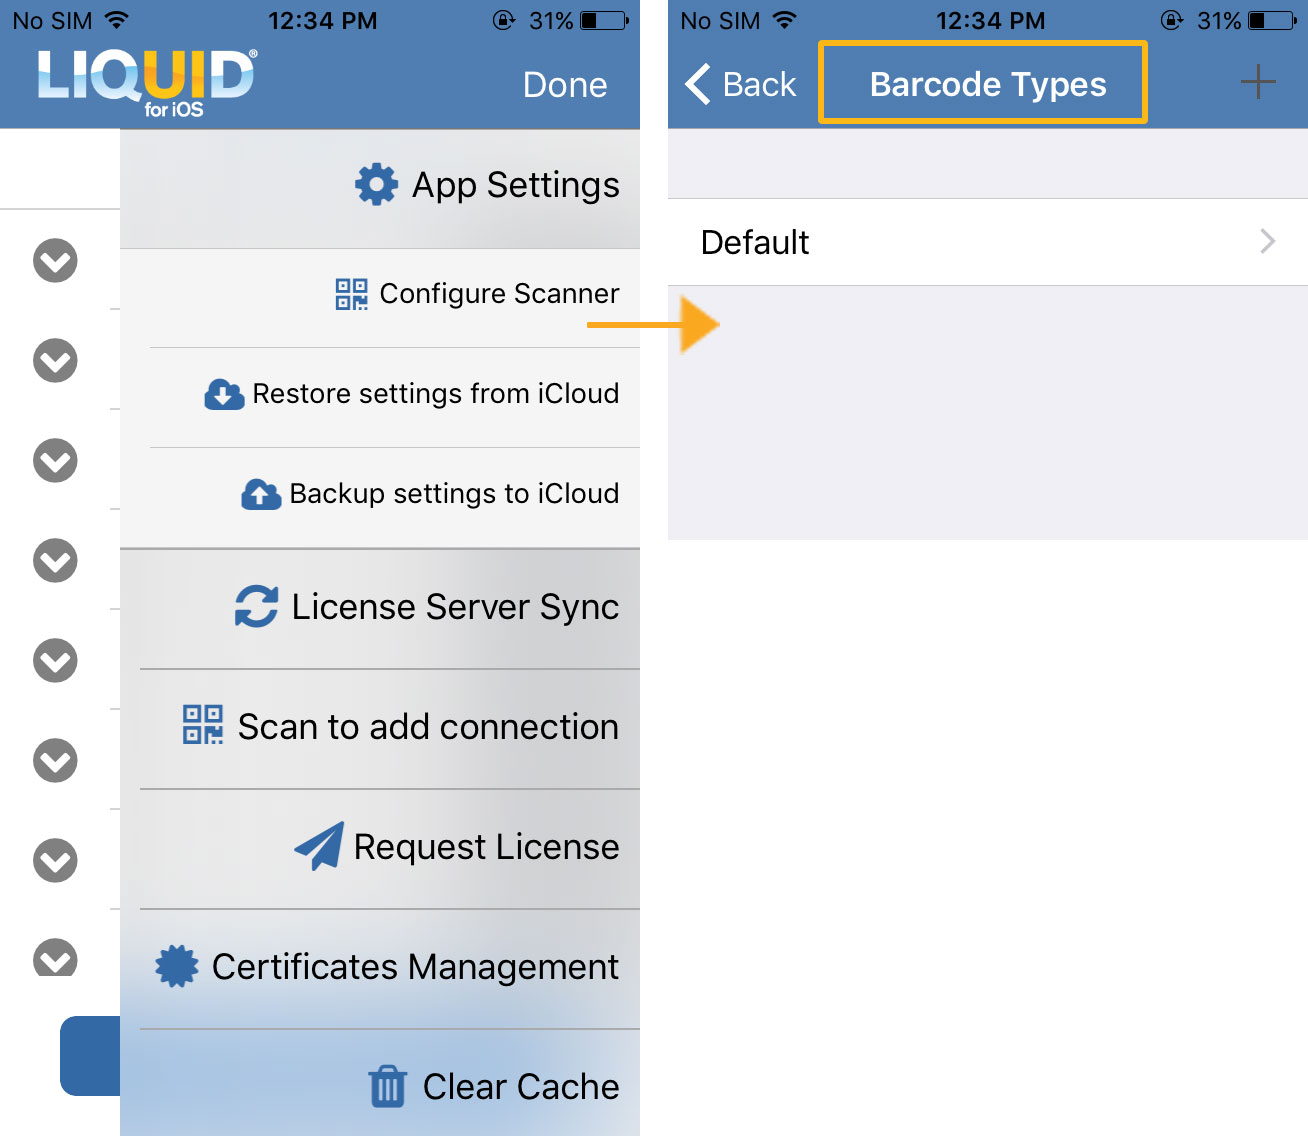 Liquid UI - Documentation - 1 05 How do I customize Liquid UI for iOS?